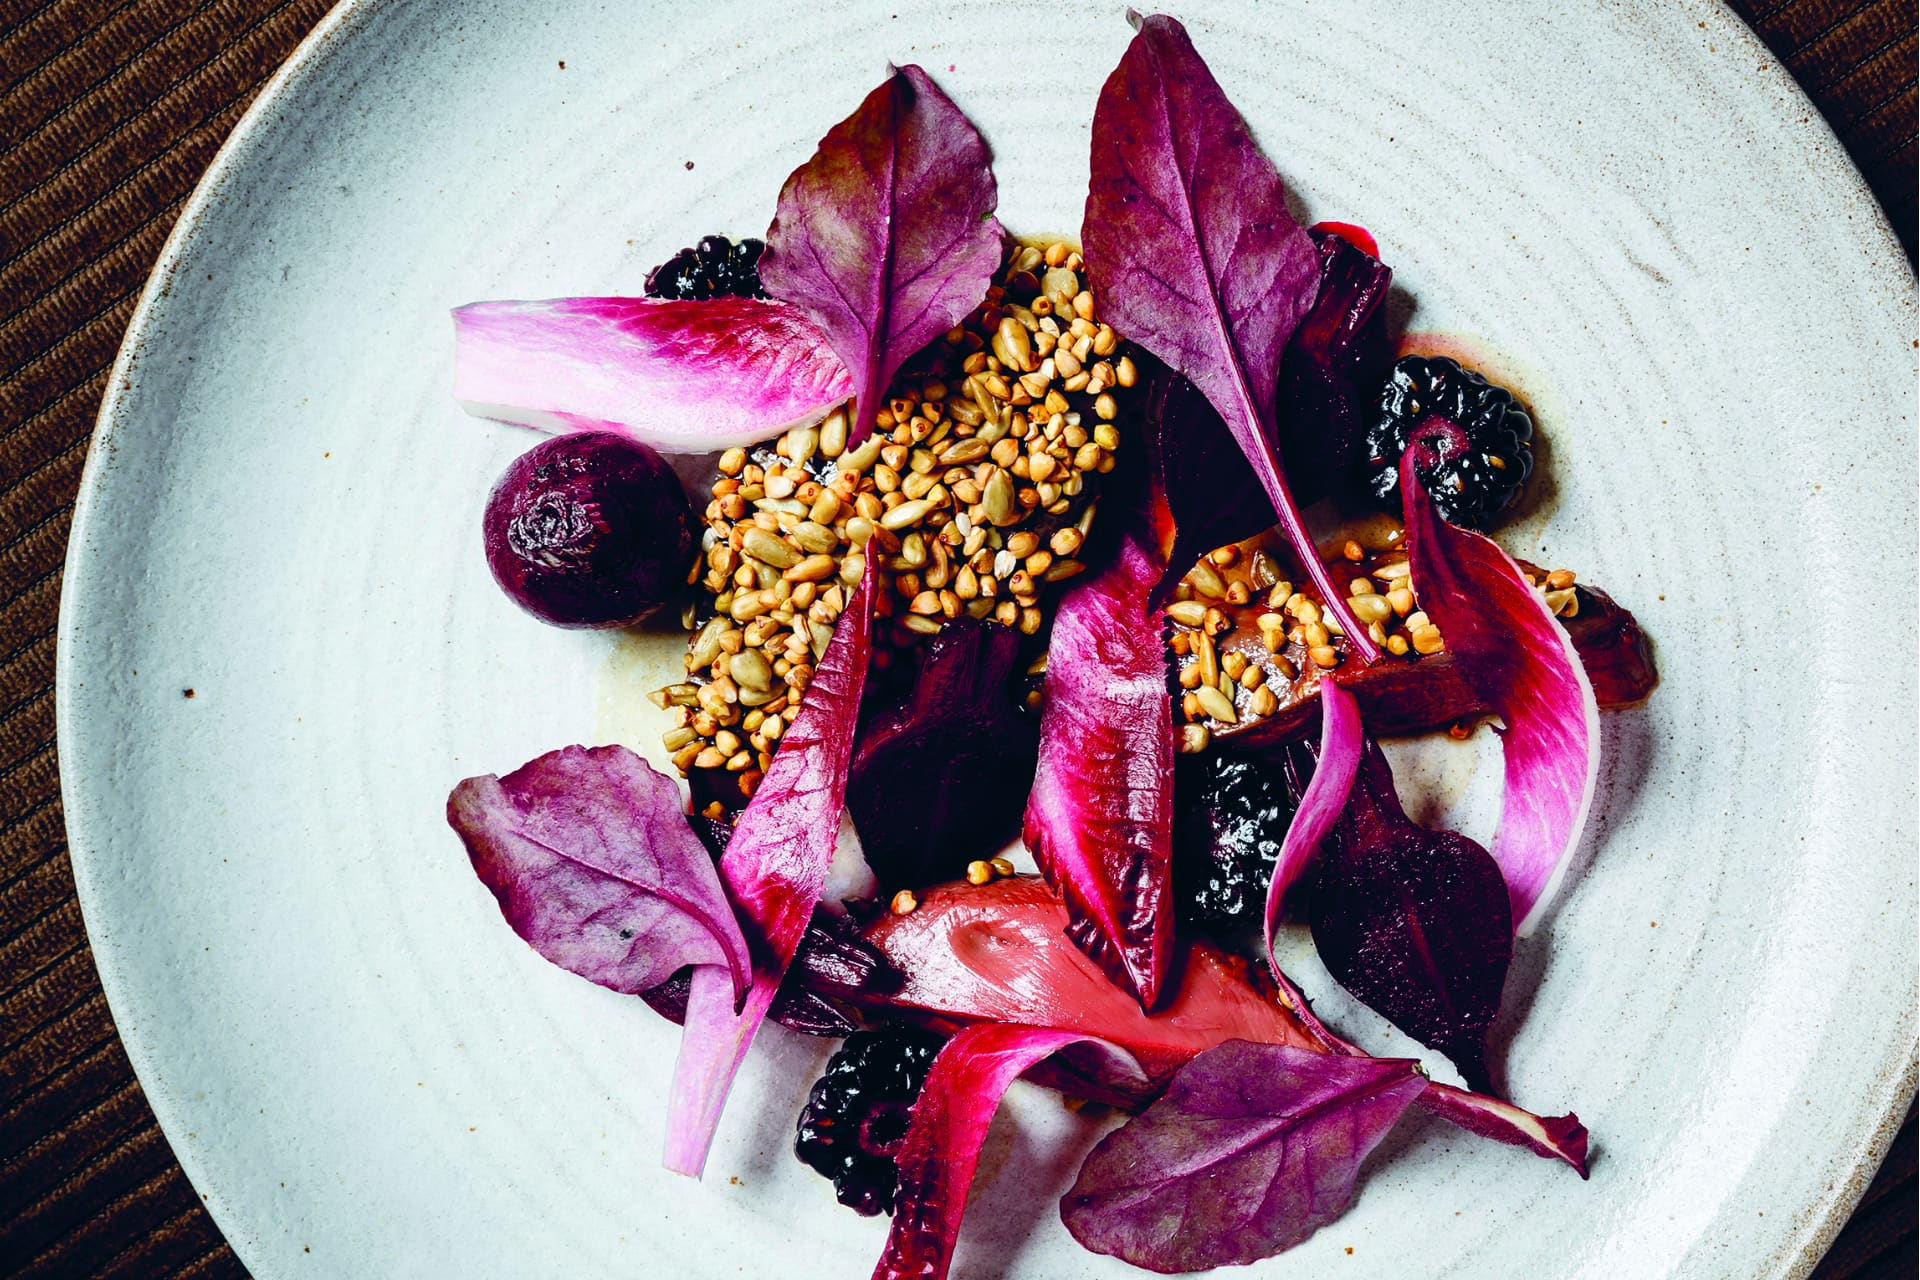 Wood pigeon beetroot red chicory blackberries and buckwheat